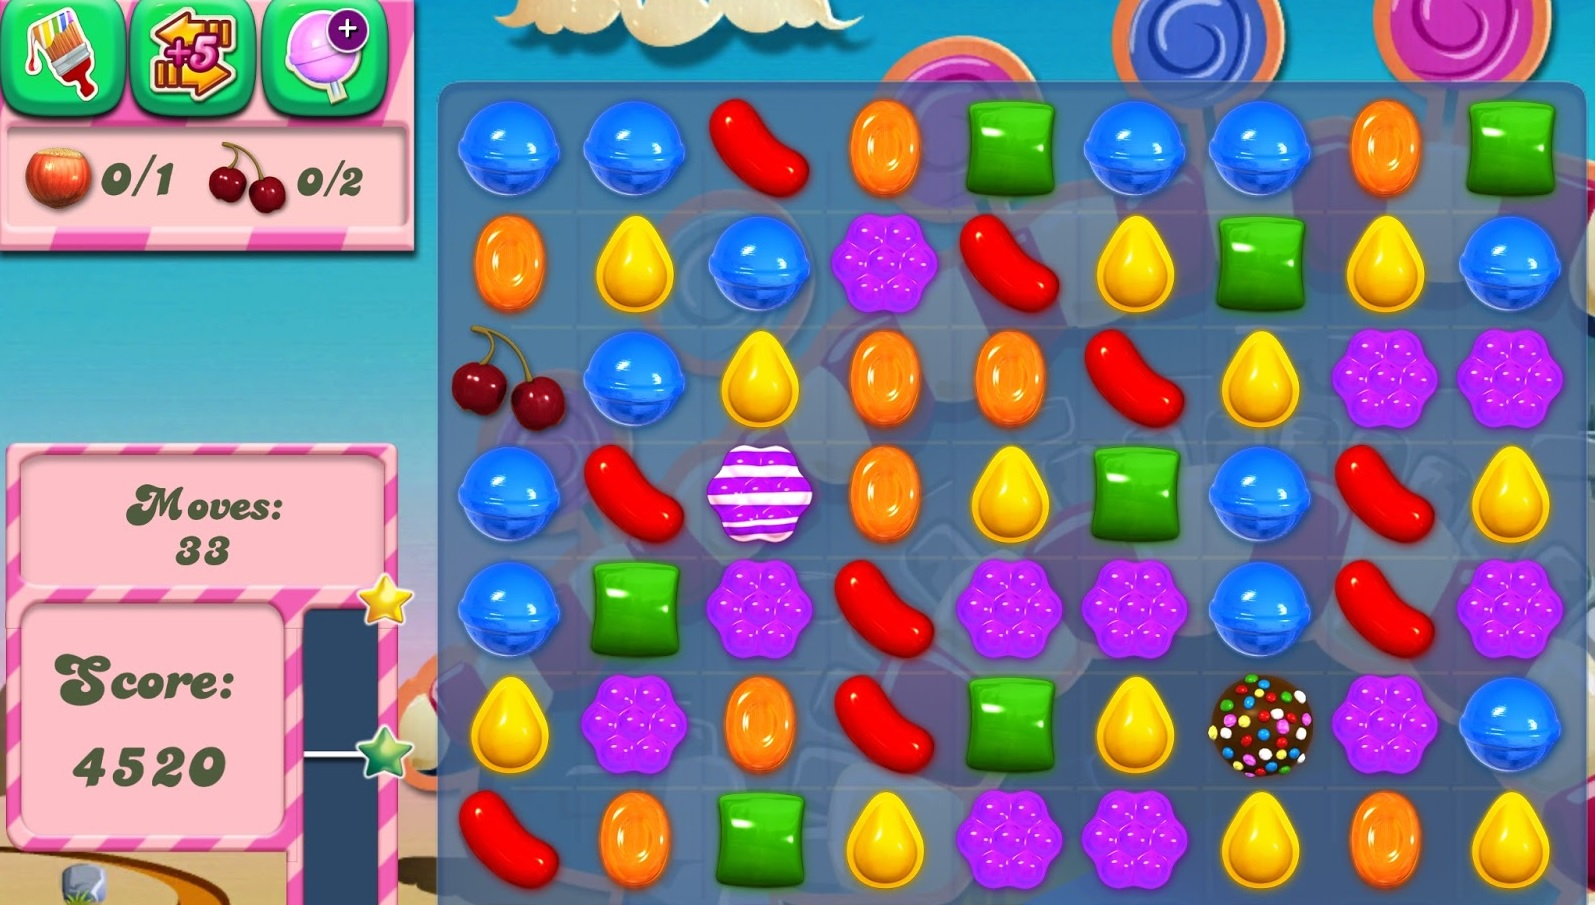 Over 9 million people spend 3+ hours each day playing Candy Crush Saga